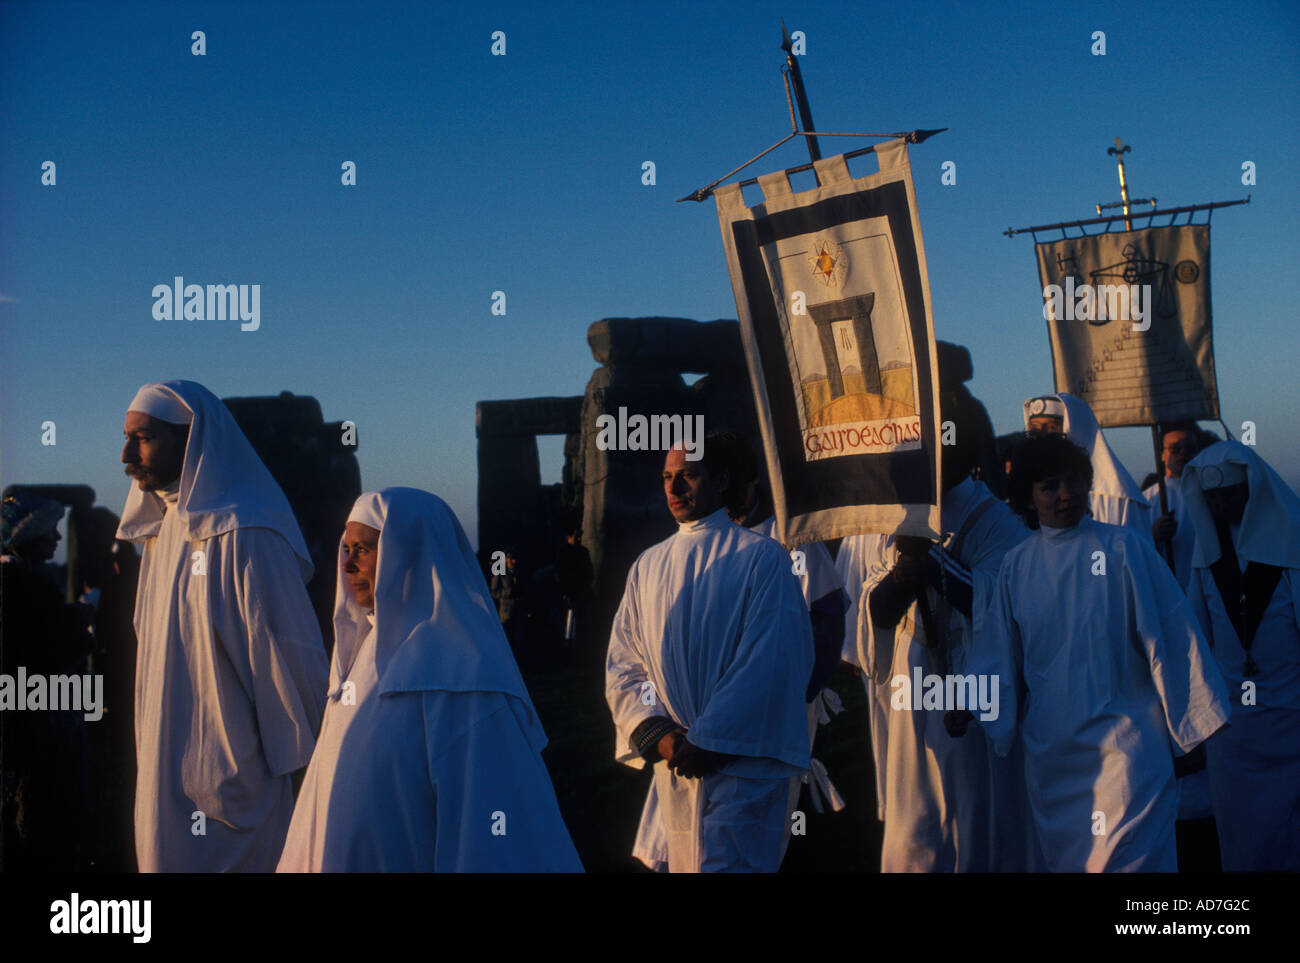 Stonehenge UK Druids summer solstice June 21st midsummer dawn ceremony Wiltshire England  HOMER SYKES - Stock Image